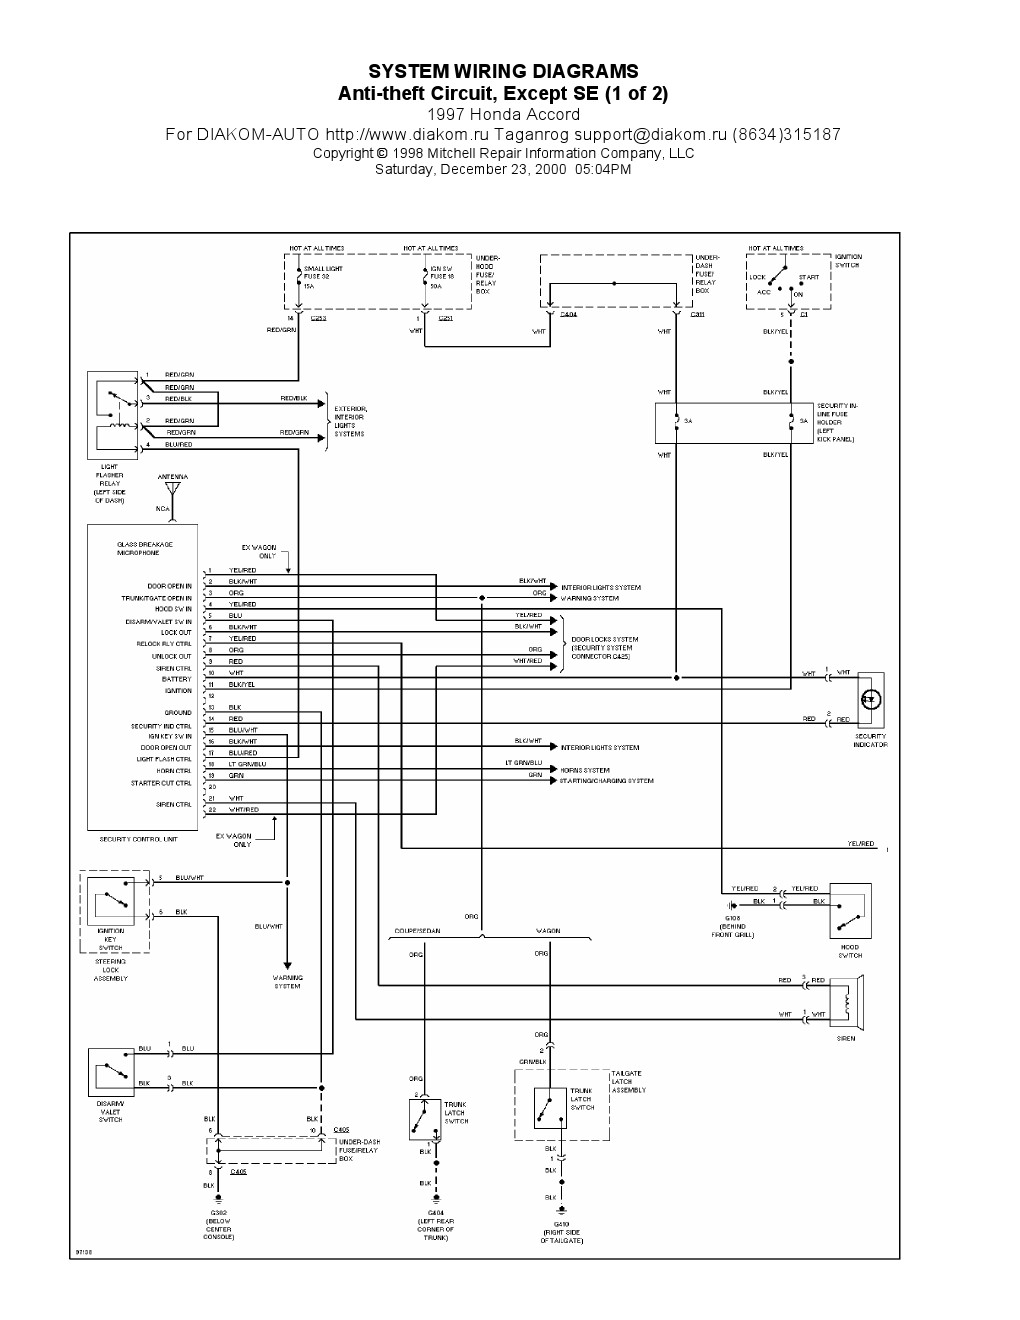 1997 honda accord antitheft circuit system wiring diagrams [ 1020 x 1320 Pixel ]